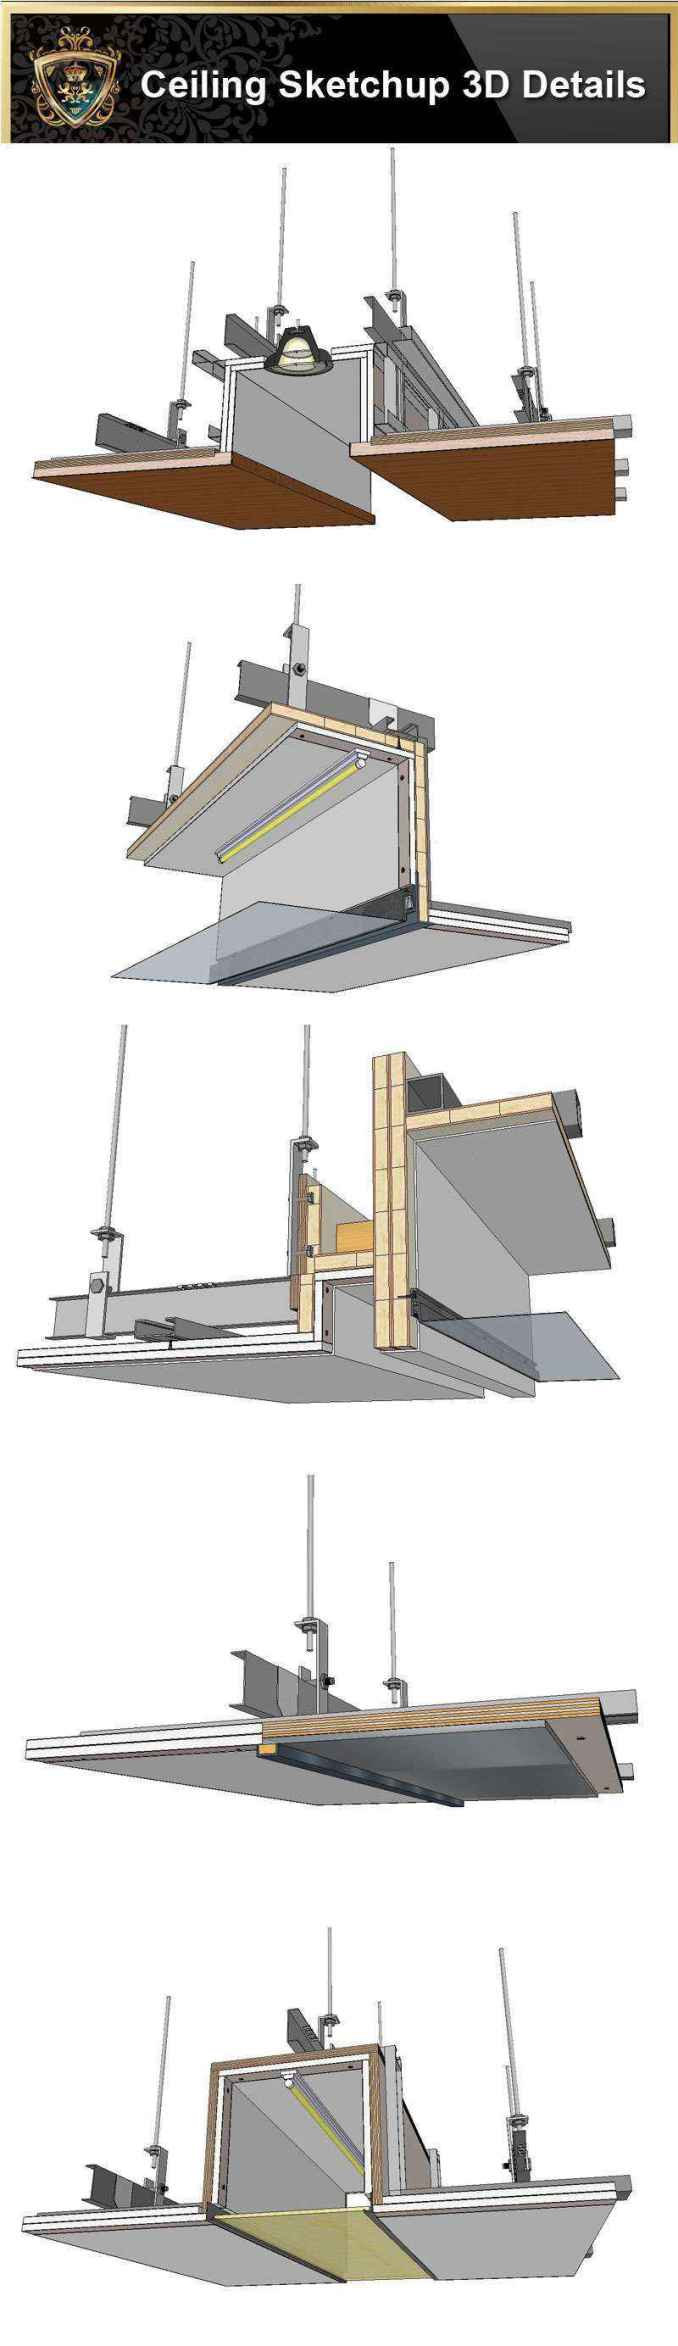 【Best 70 Types Ceiling Sketchup 3D Detail Models】 (★Recommanded★)